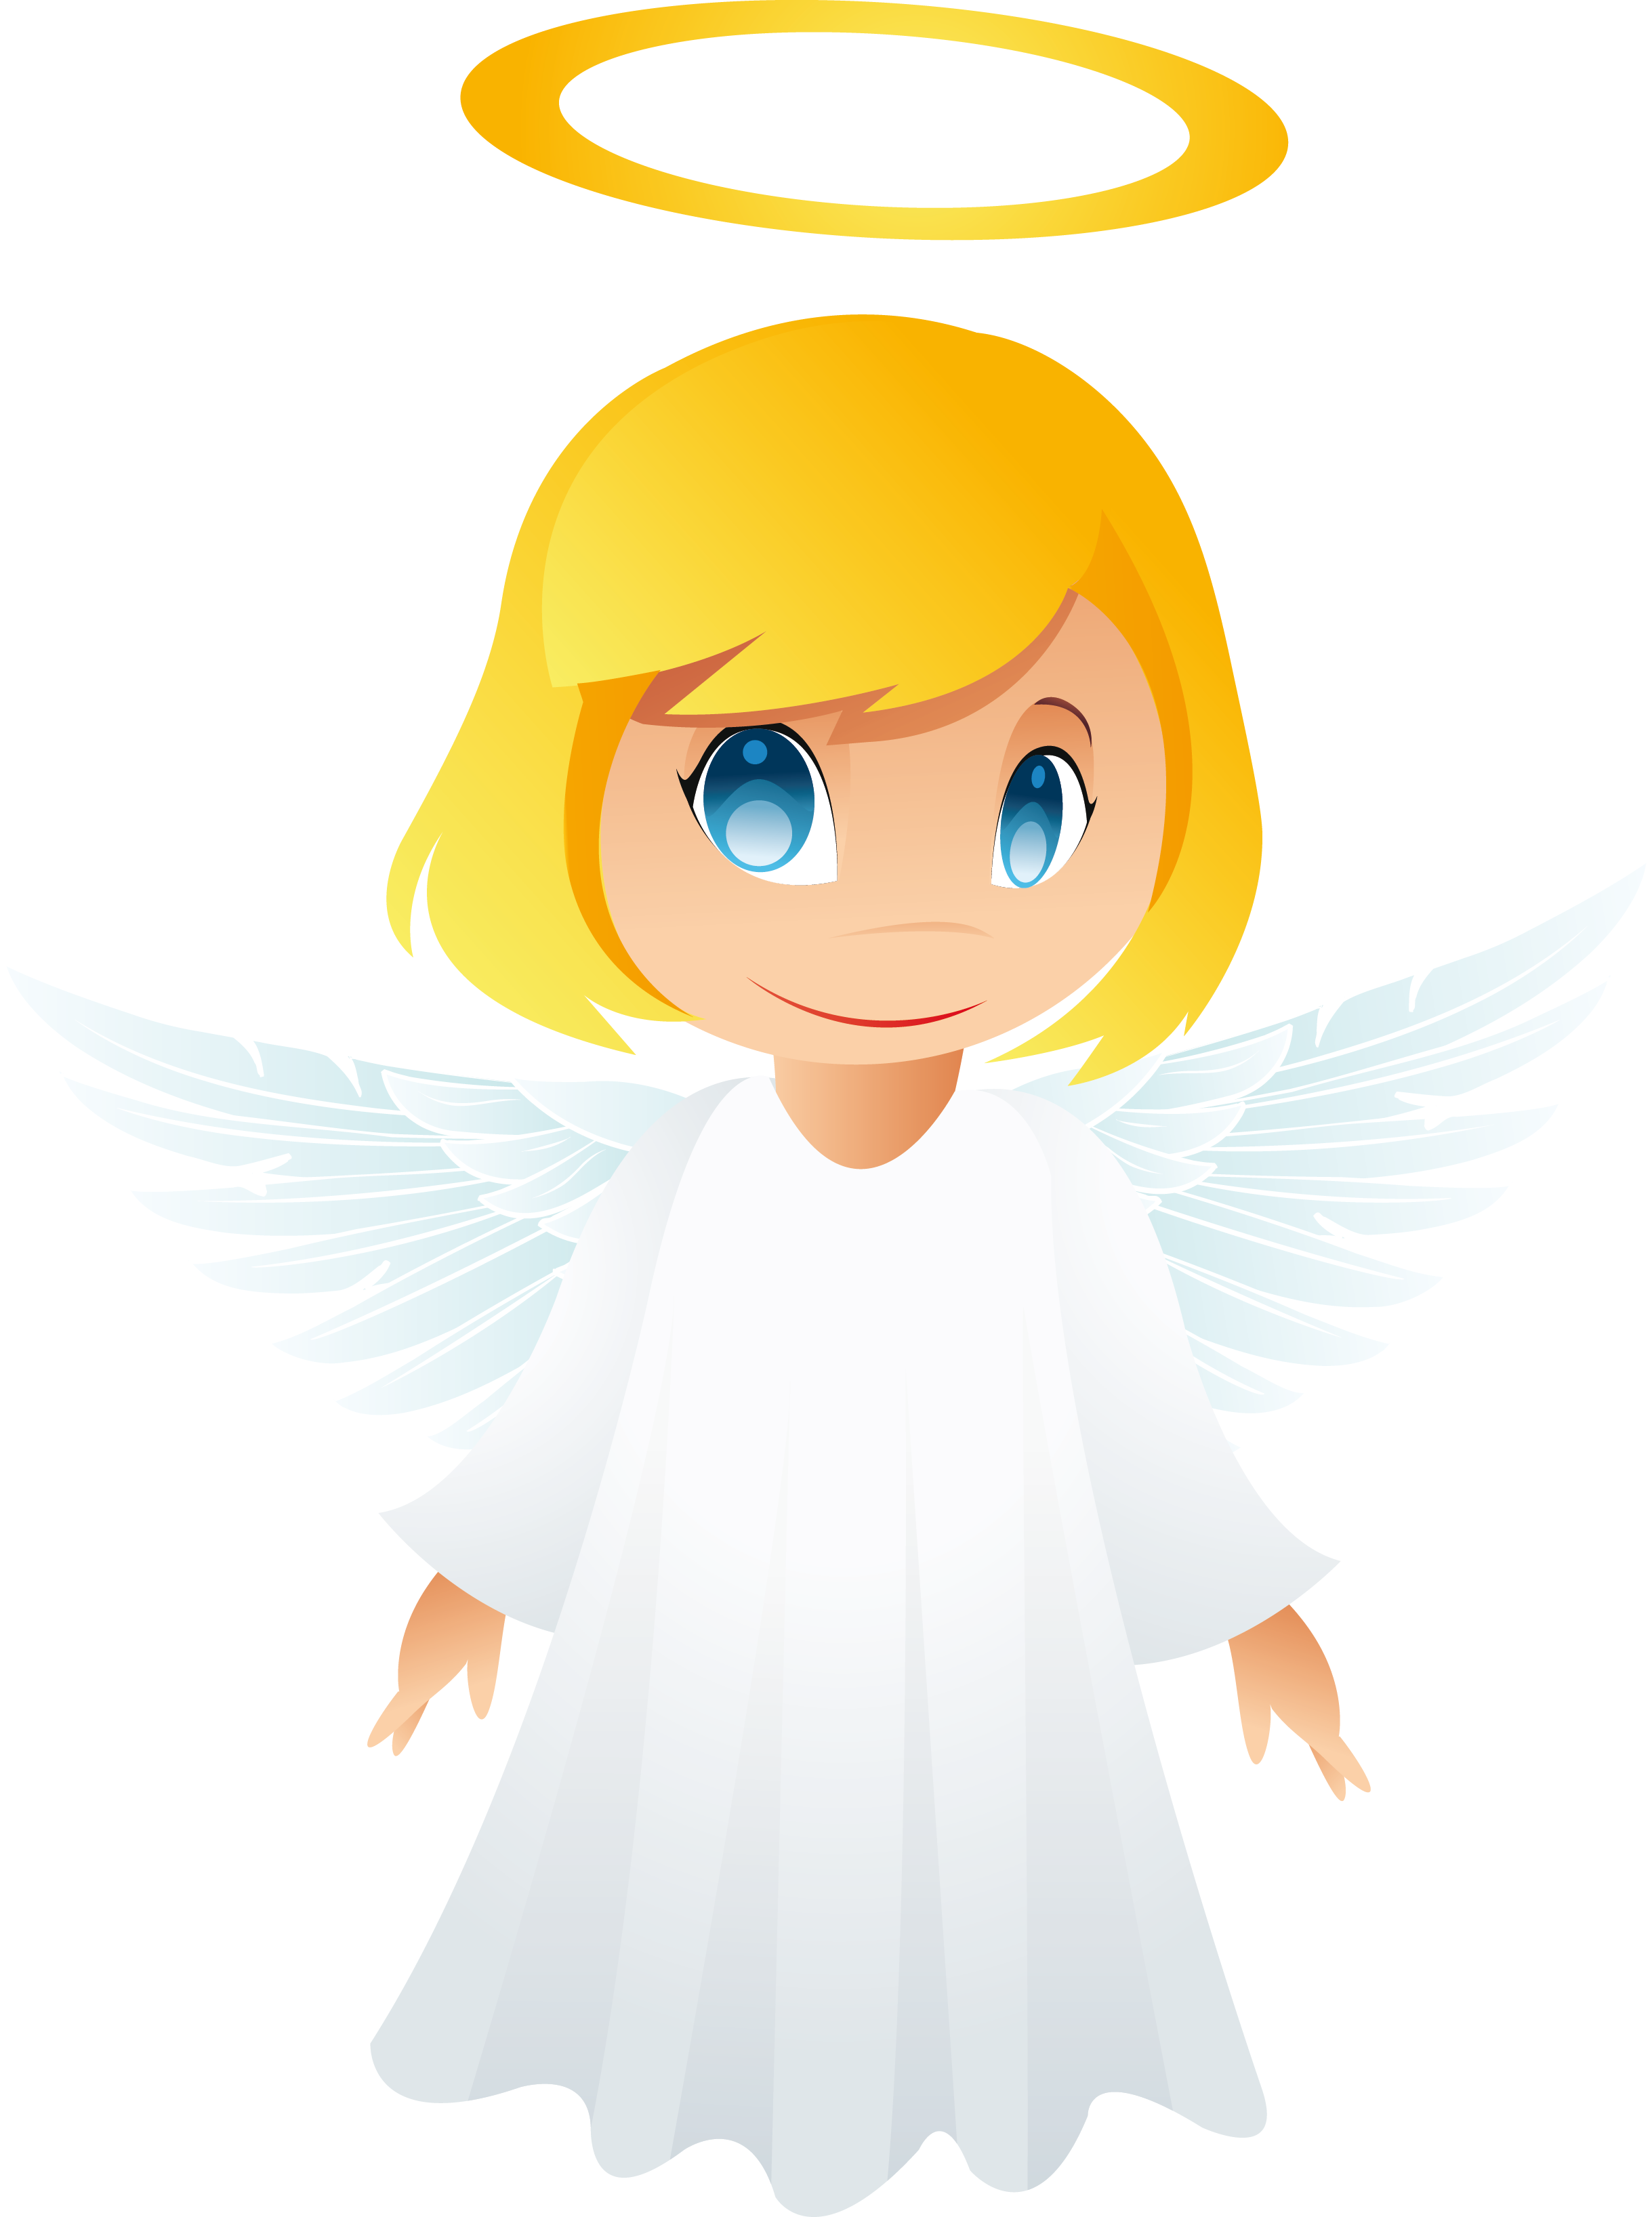 angel clipart free graphics of cherubs and angels the cliparts rh pinterest com